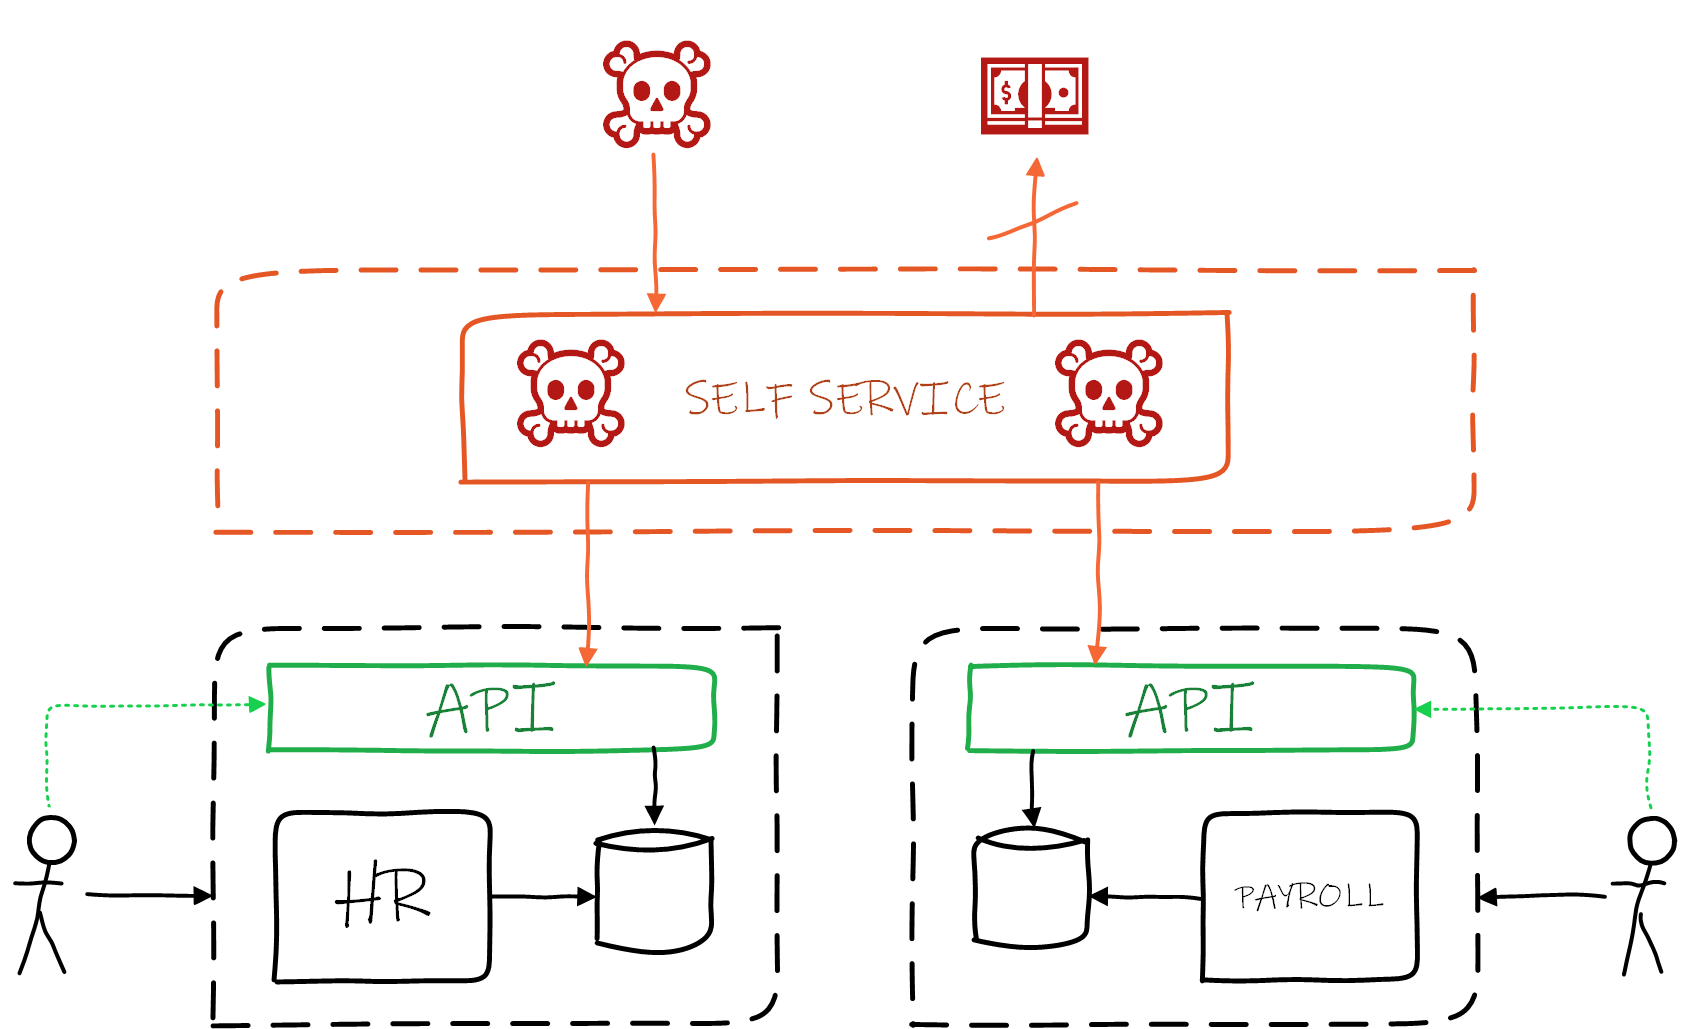 Use of API gateways stops an attacker from getting access to backend systems